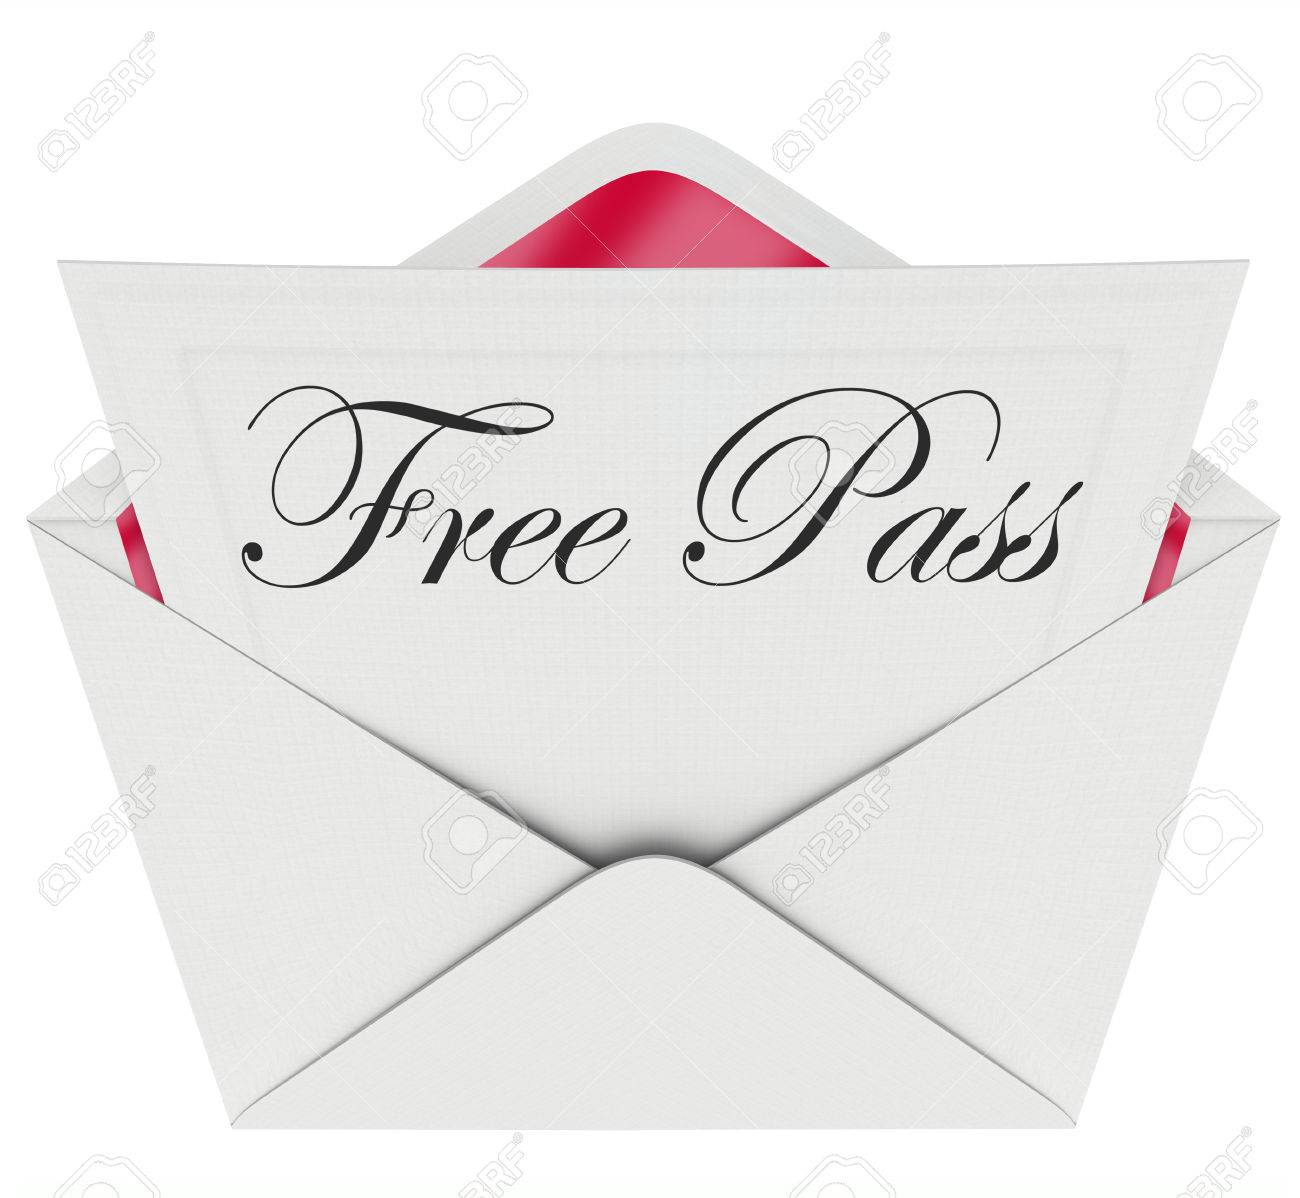 The Words Free Pass On A Card Or Invitation In An Open Envelope